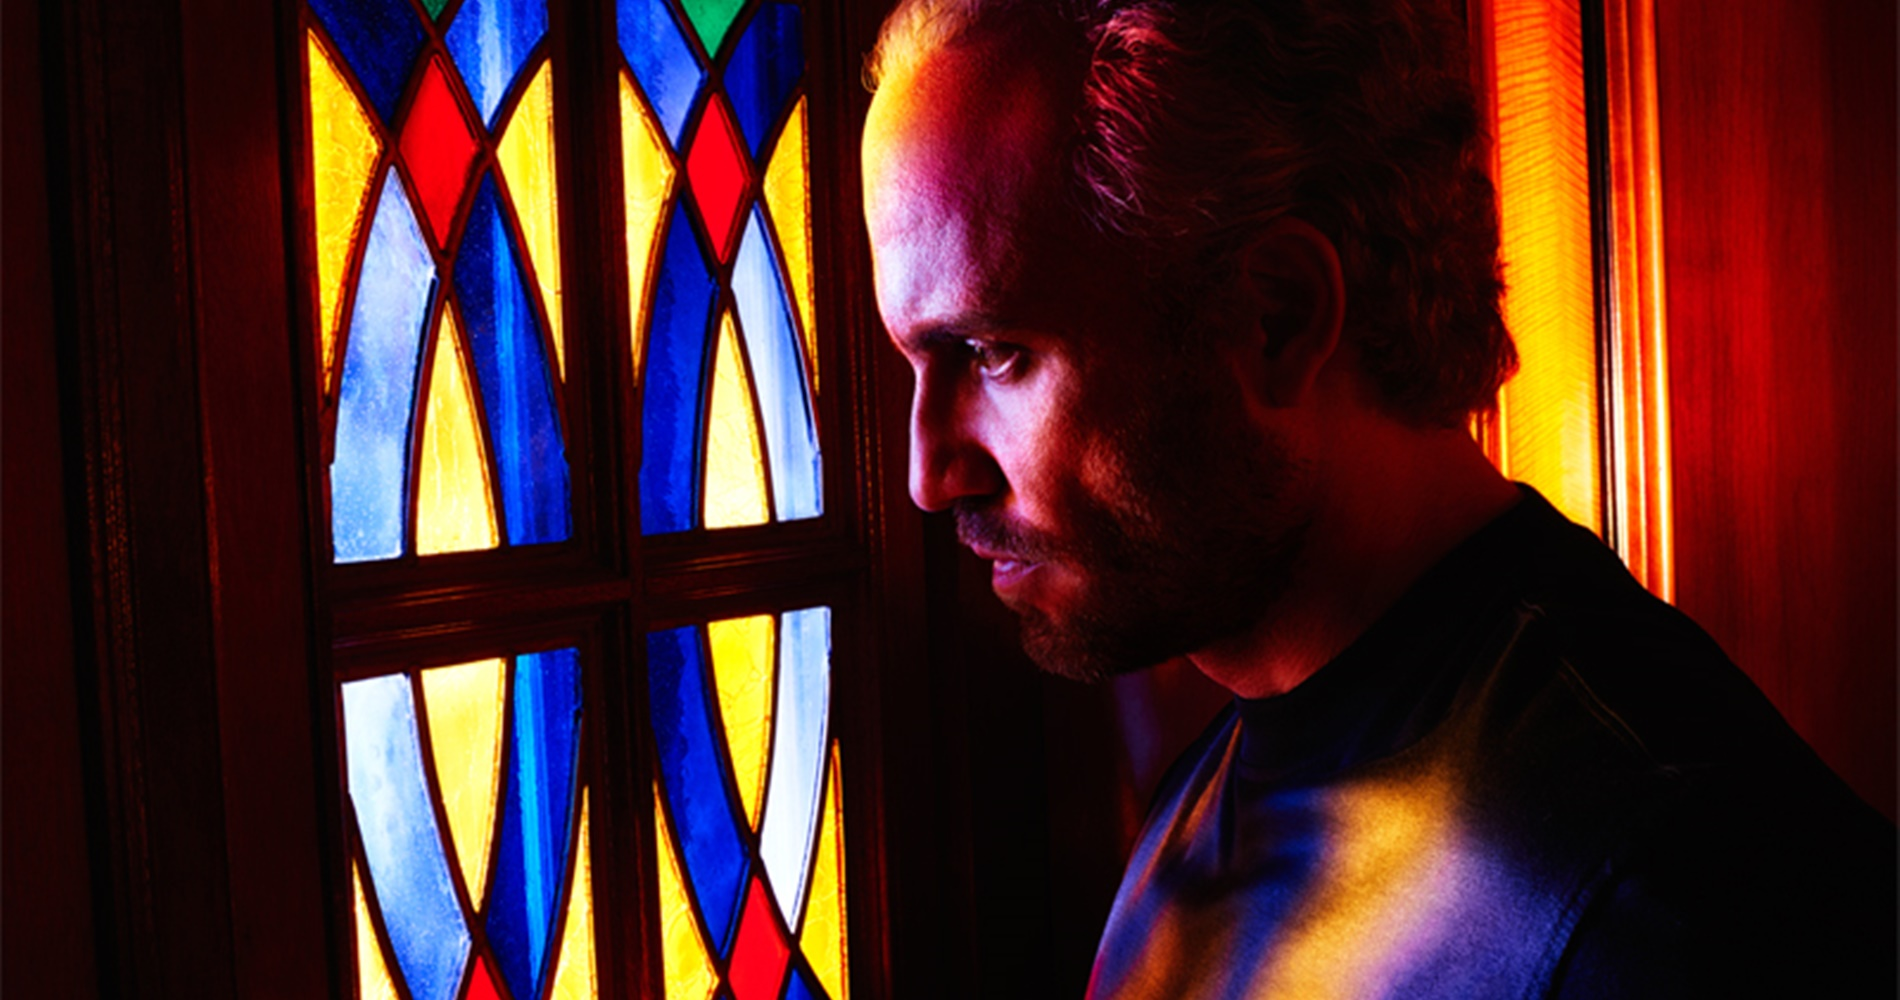 Giovanni Versace looking out a stained glass window., movies/tv, pop culture, wdc-slideshow